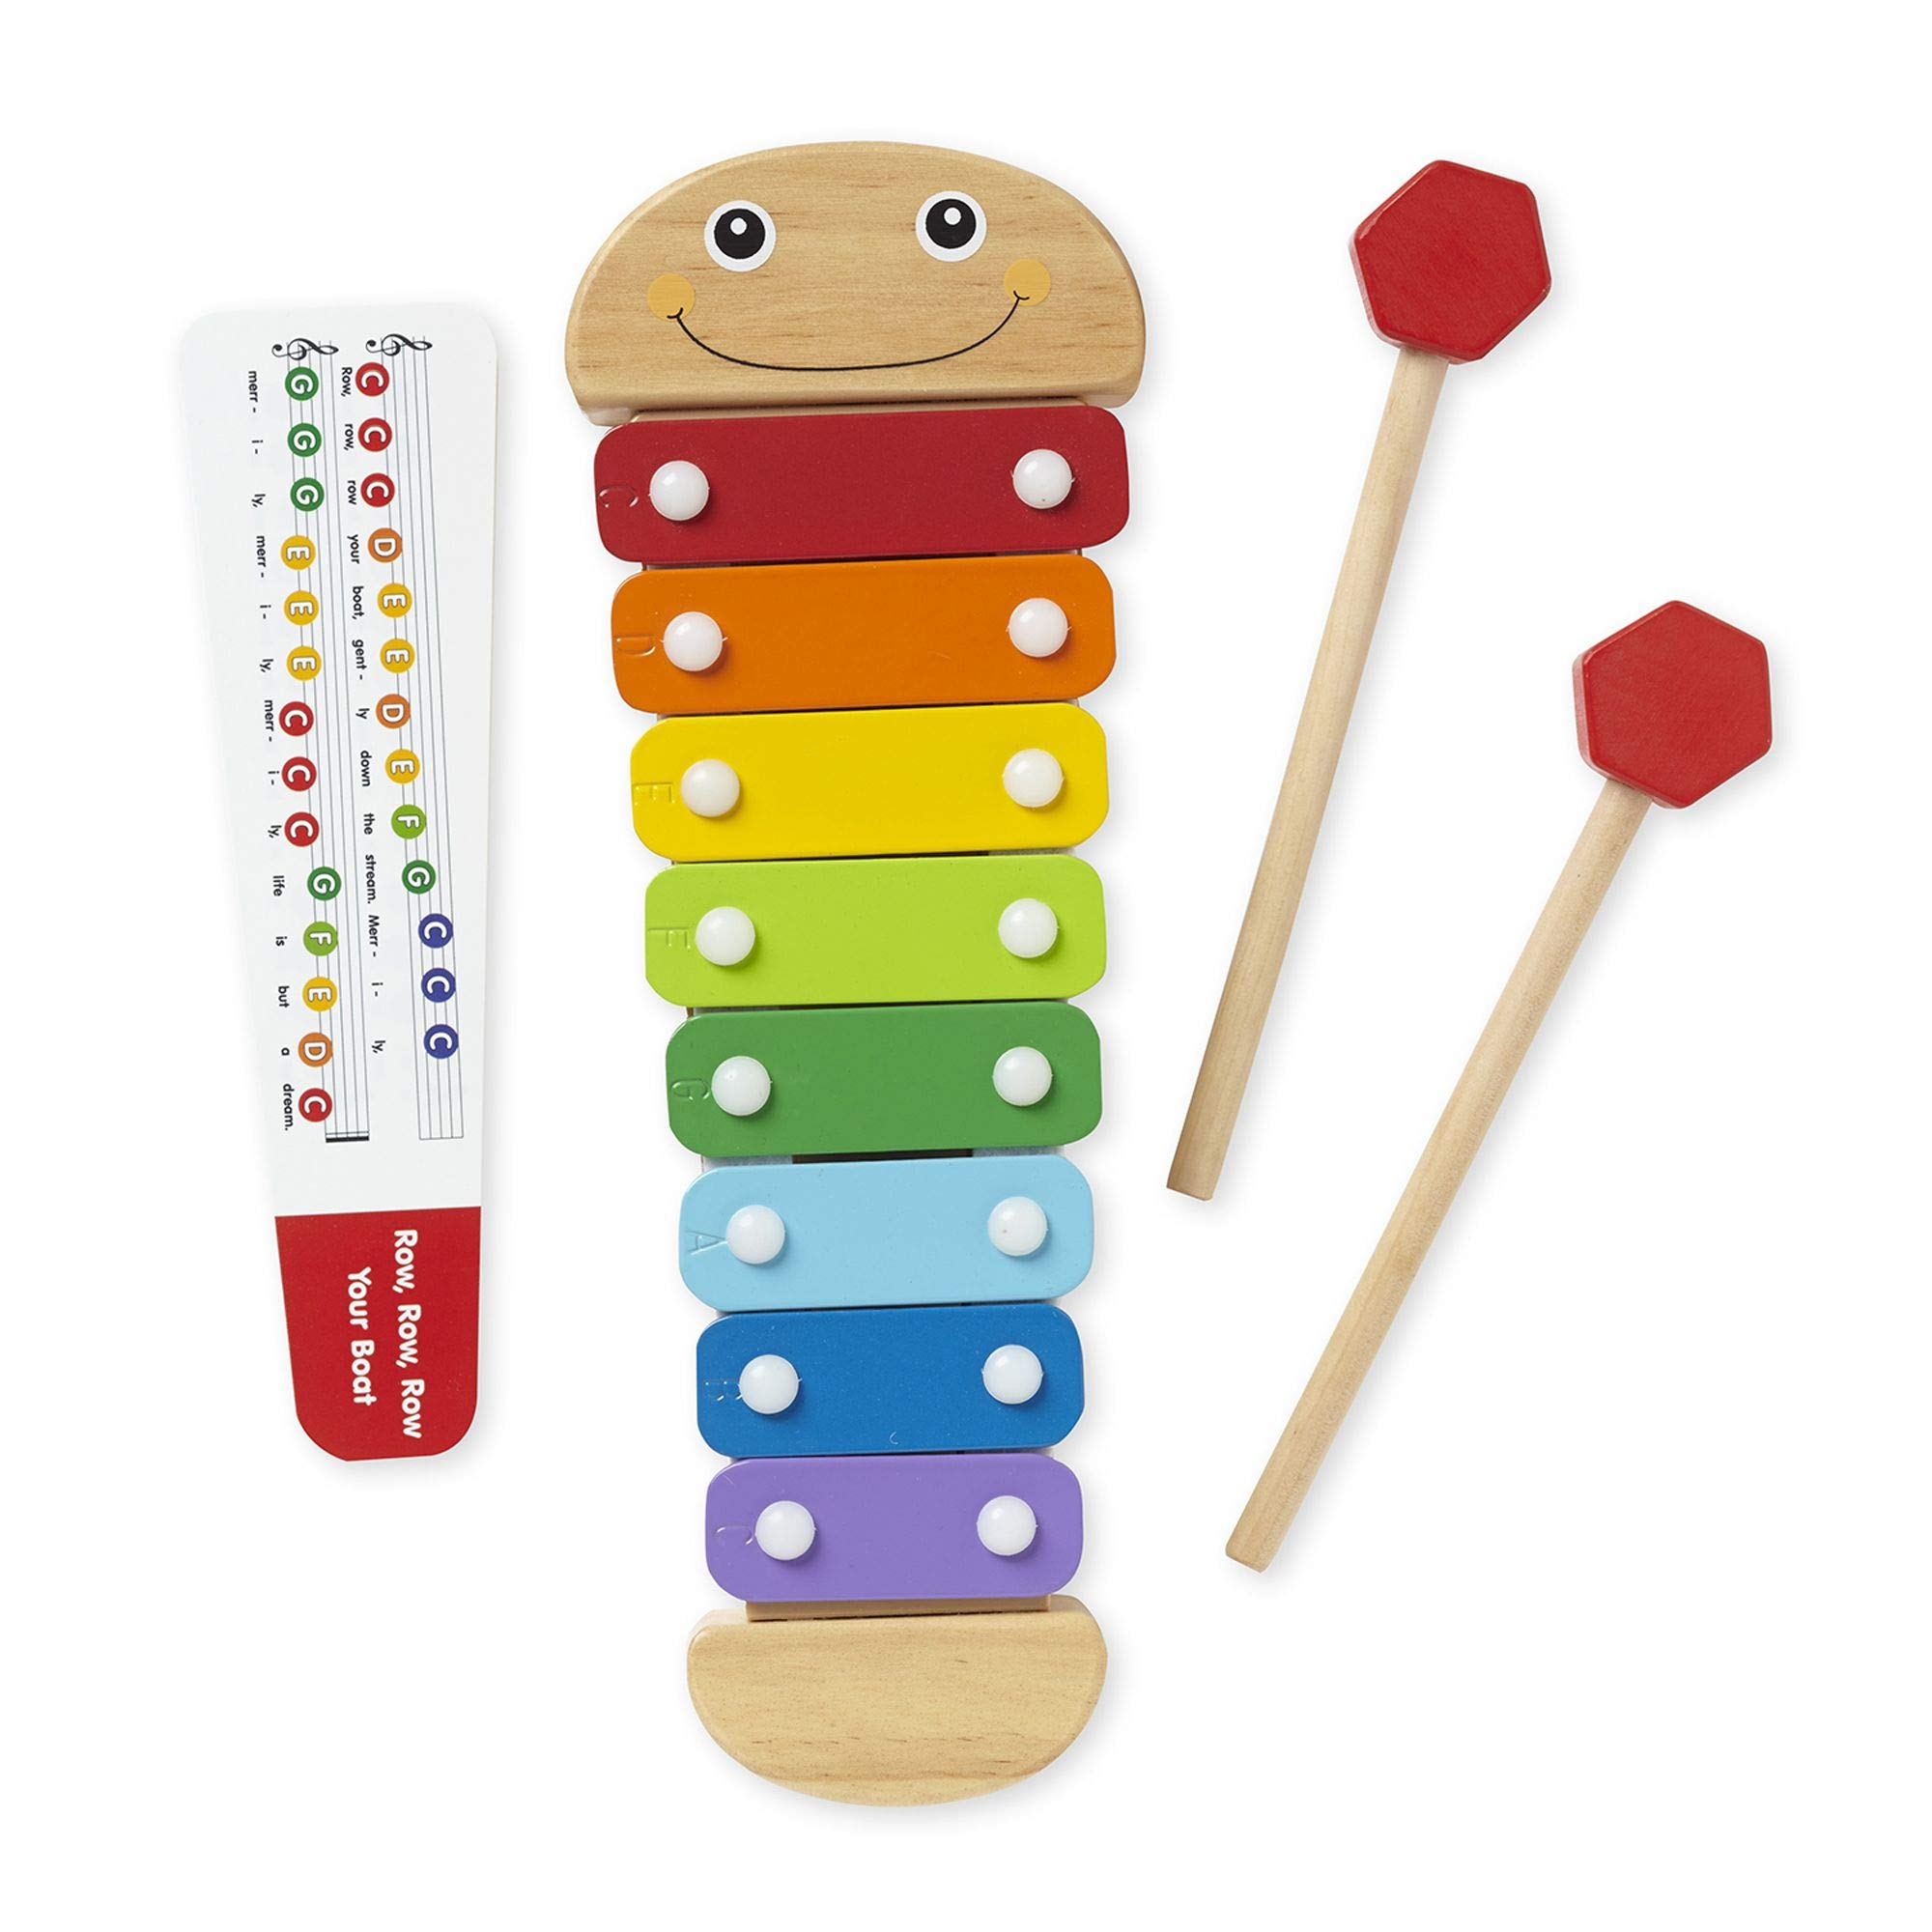 Melissa & Doug Caterpillar Xylophone, Musical Instruments, Rainbow-Colored, One Octave of Notes, Self-Storing Wooden Mallets, 18'' H x 6.2'' W x 2'' L by Melissa & Doug